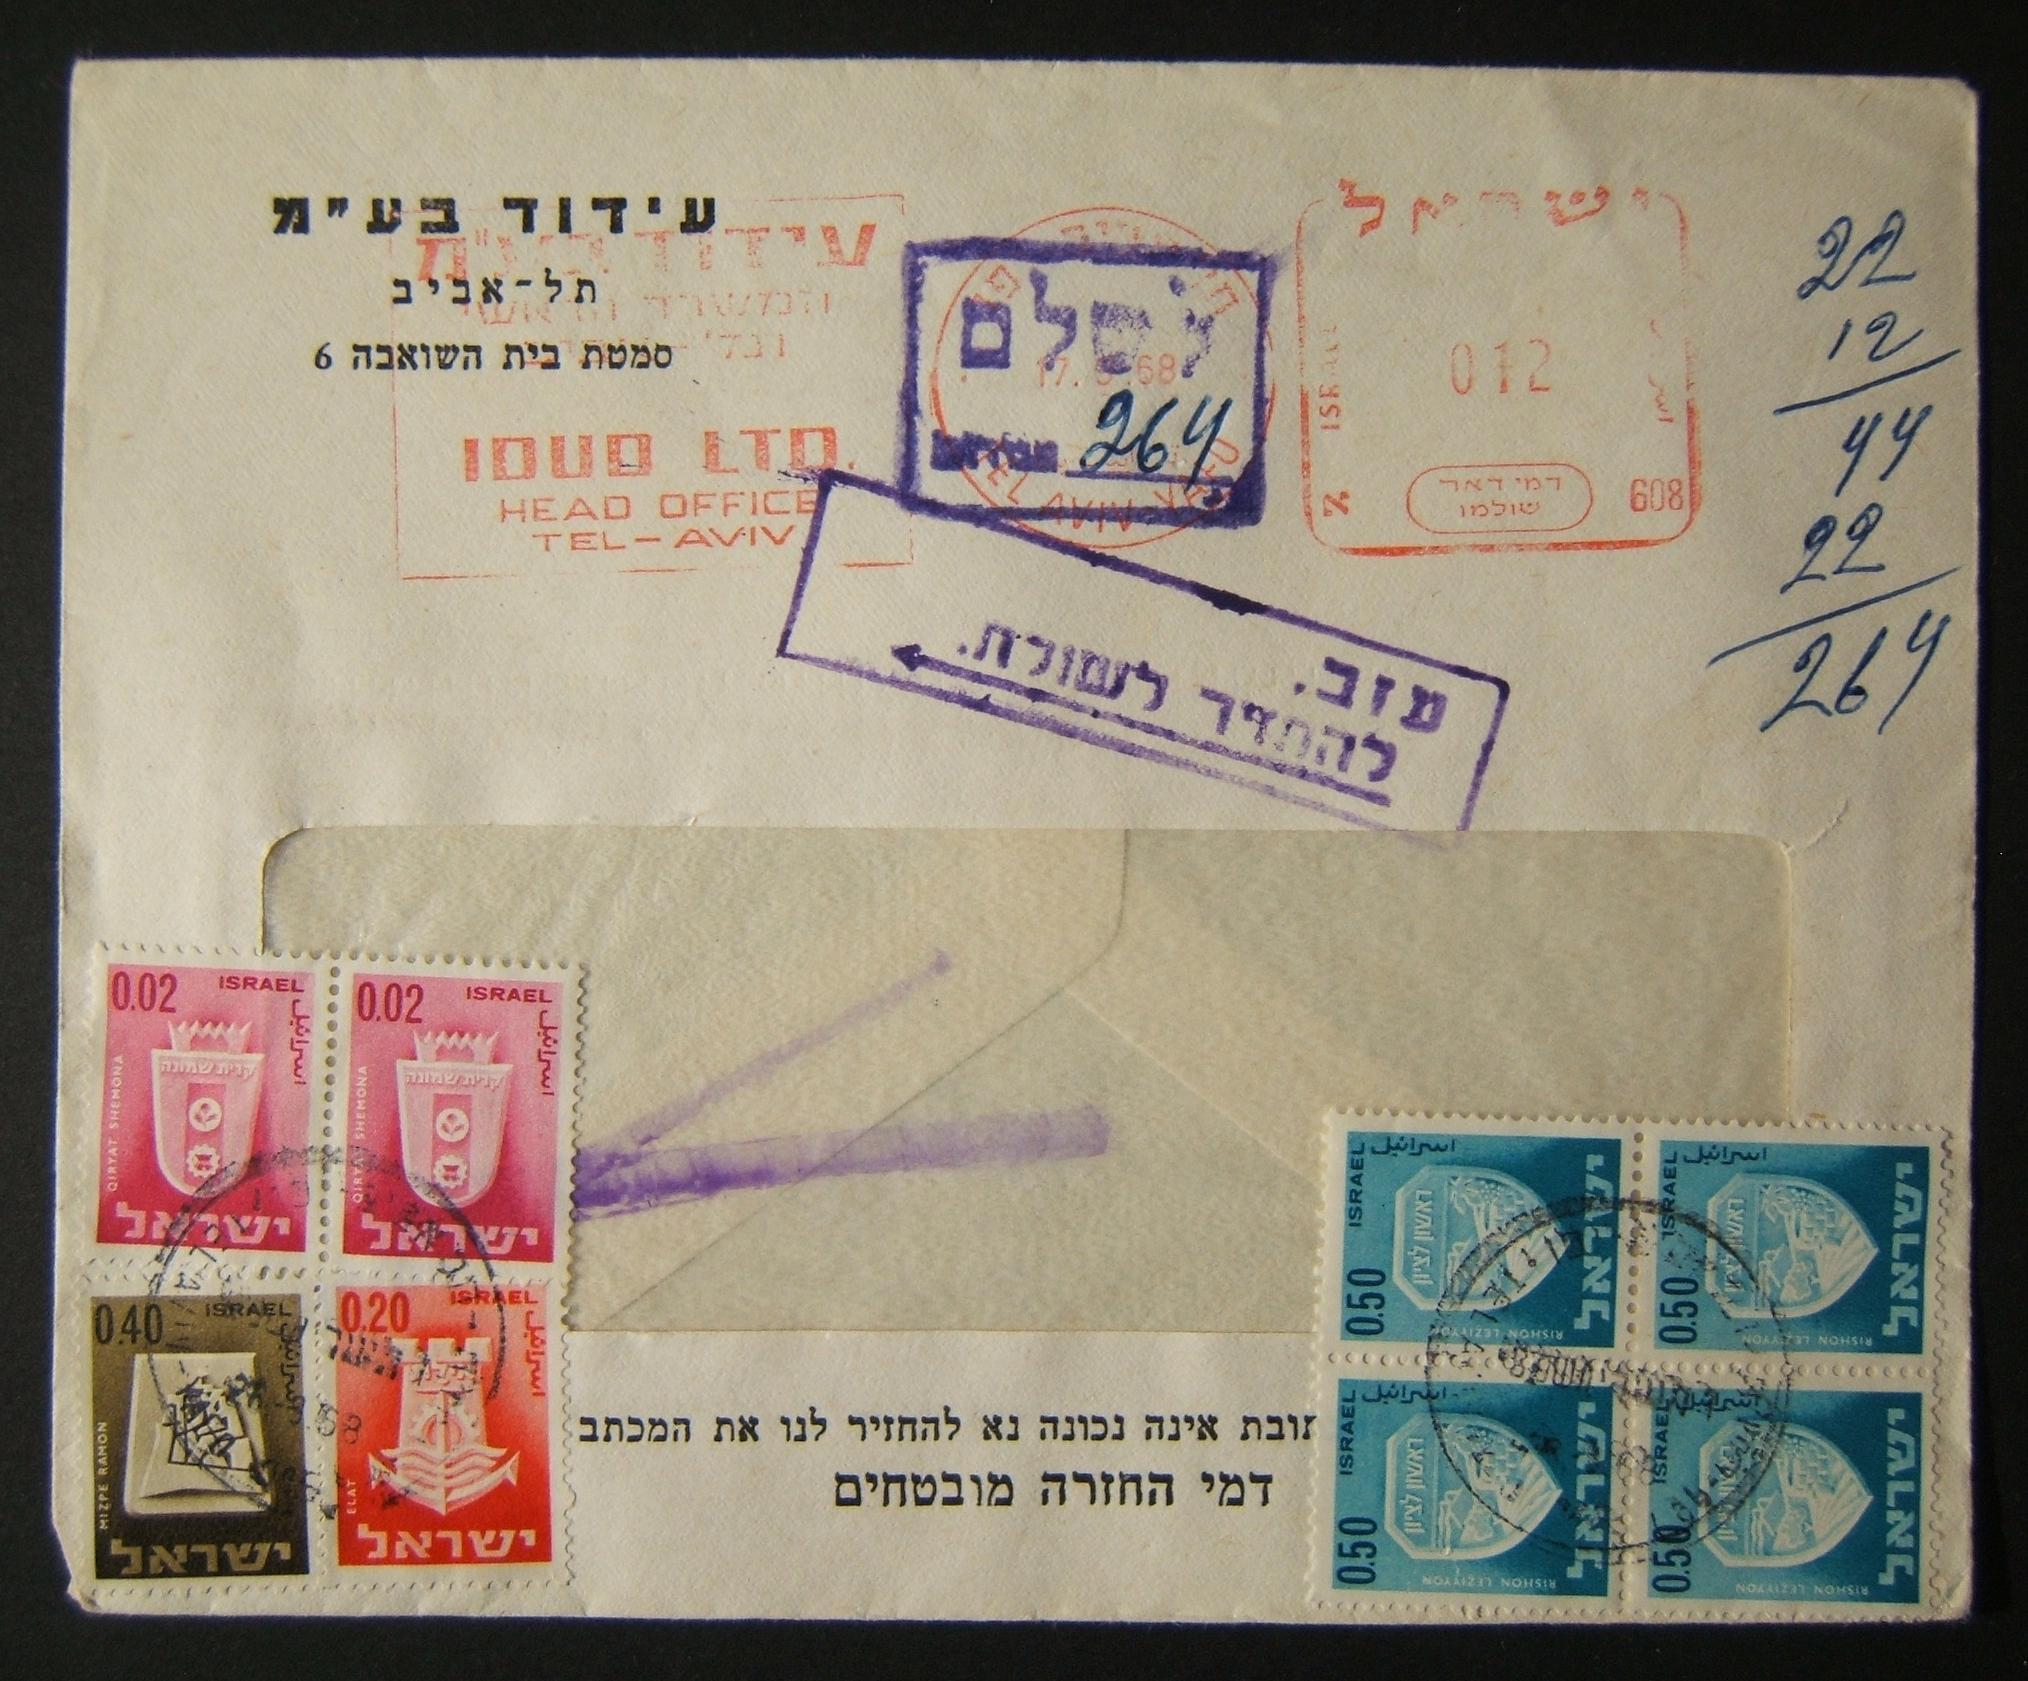 "1968 المحلية ""رأس كومة"" فرض ضريبة على الضرائب: 17-6-68 م comm. cv ex TLV franked by metre at DO-12 period 12 Ag rate، but returned to sender as addressee left (cachet & manuscrip"